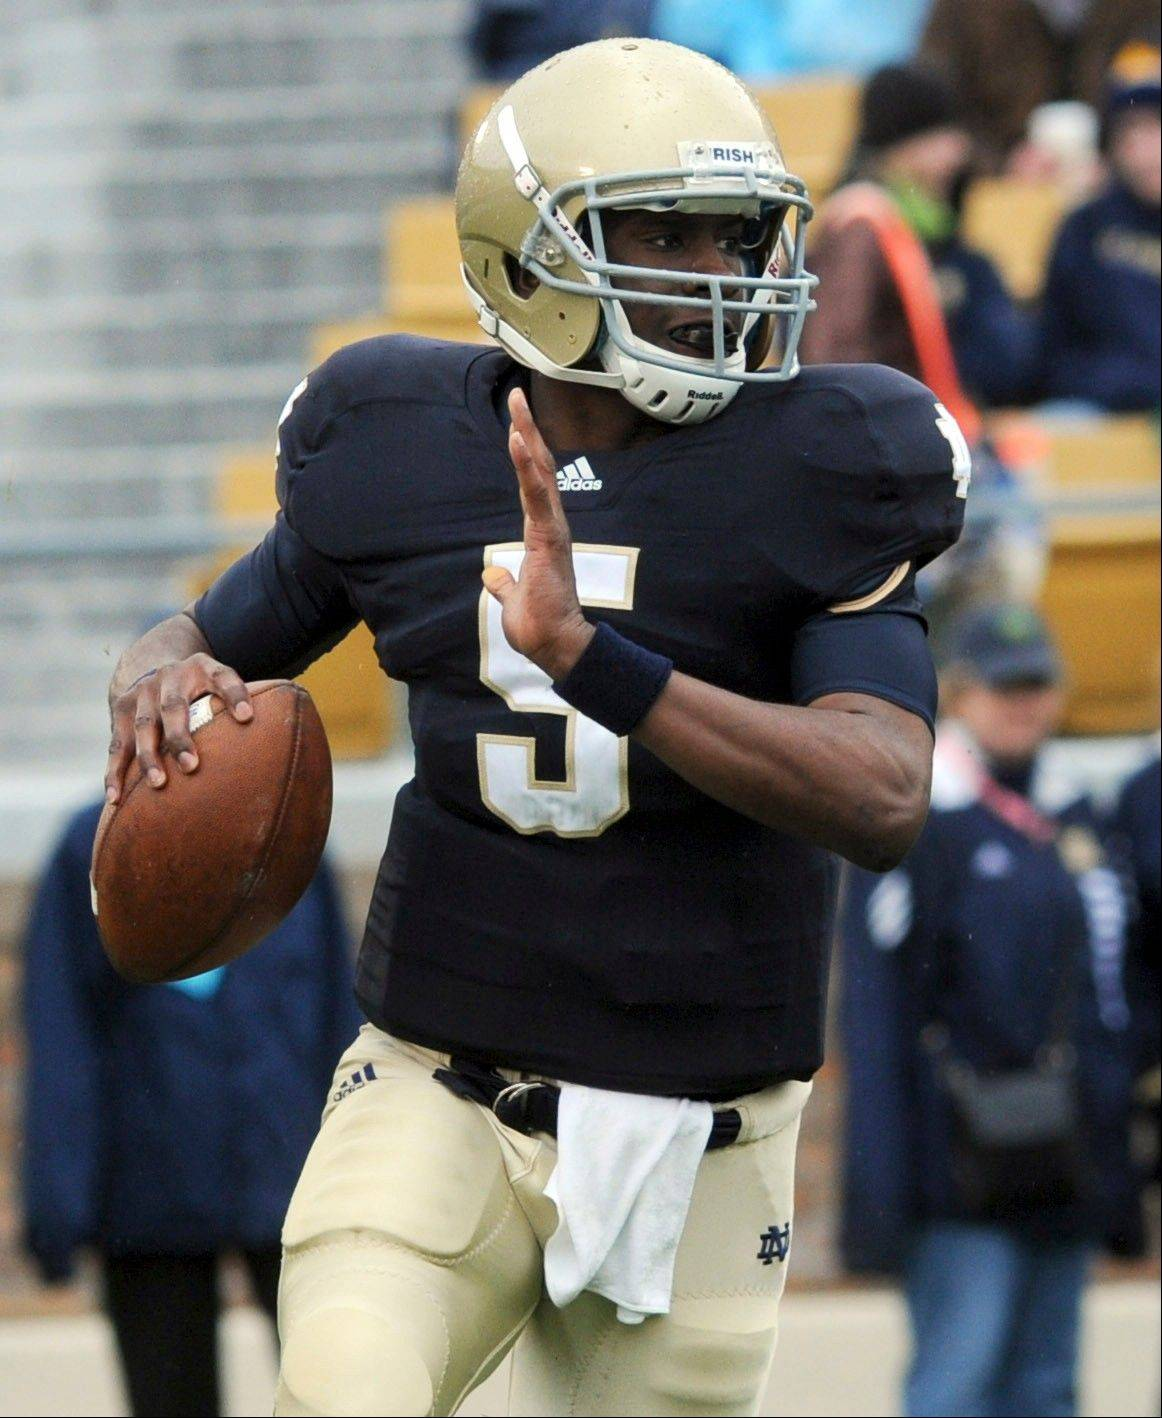 Everett Golson was suspended by Notre Dame for the fall semester.